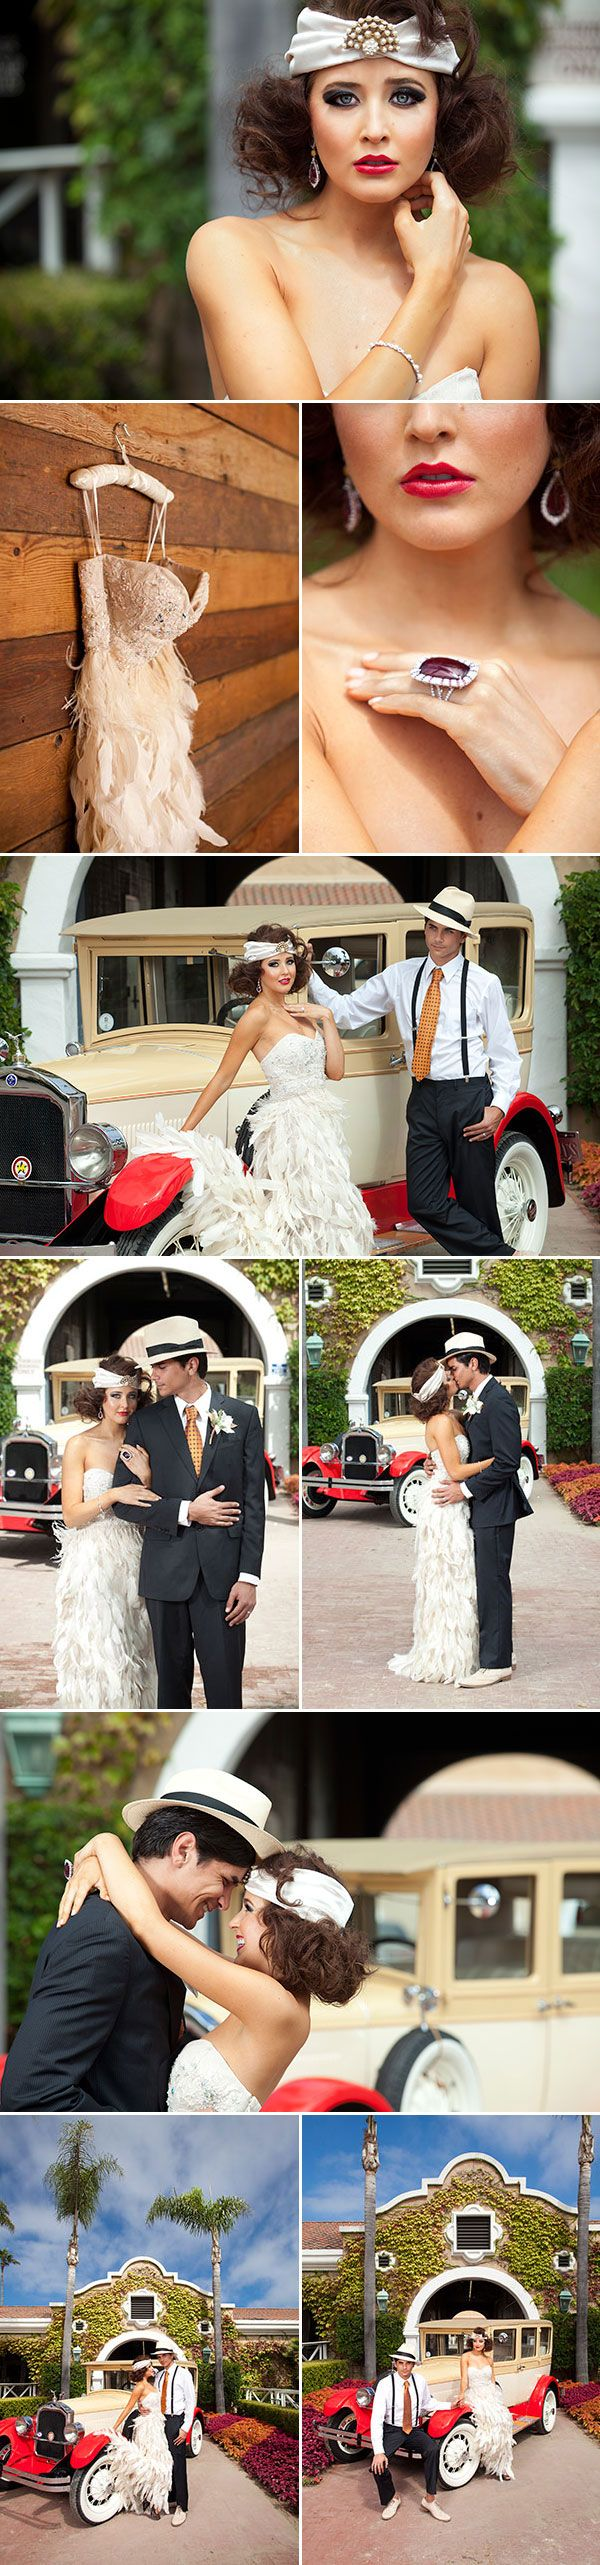 """""""Gatsby wedding inspiration"""" -- for when you don't care that Gatsby was a compulsive liar, Daisy was a self-involved money-chaser, and everyone involved developed deep obsessions on shallow targets because actually feeling emotions was too hard.   I mean, the twenties are gorgeous, but Gatsby itself is not an inspiration for marriage!"""